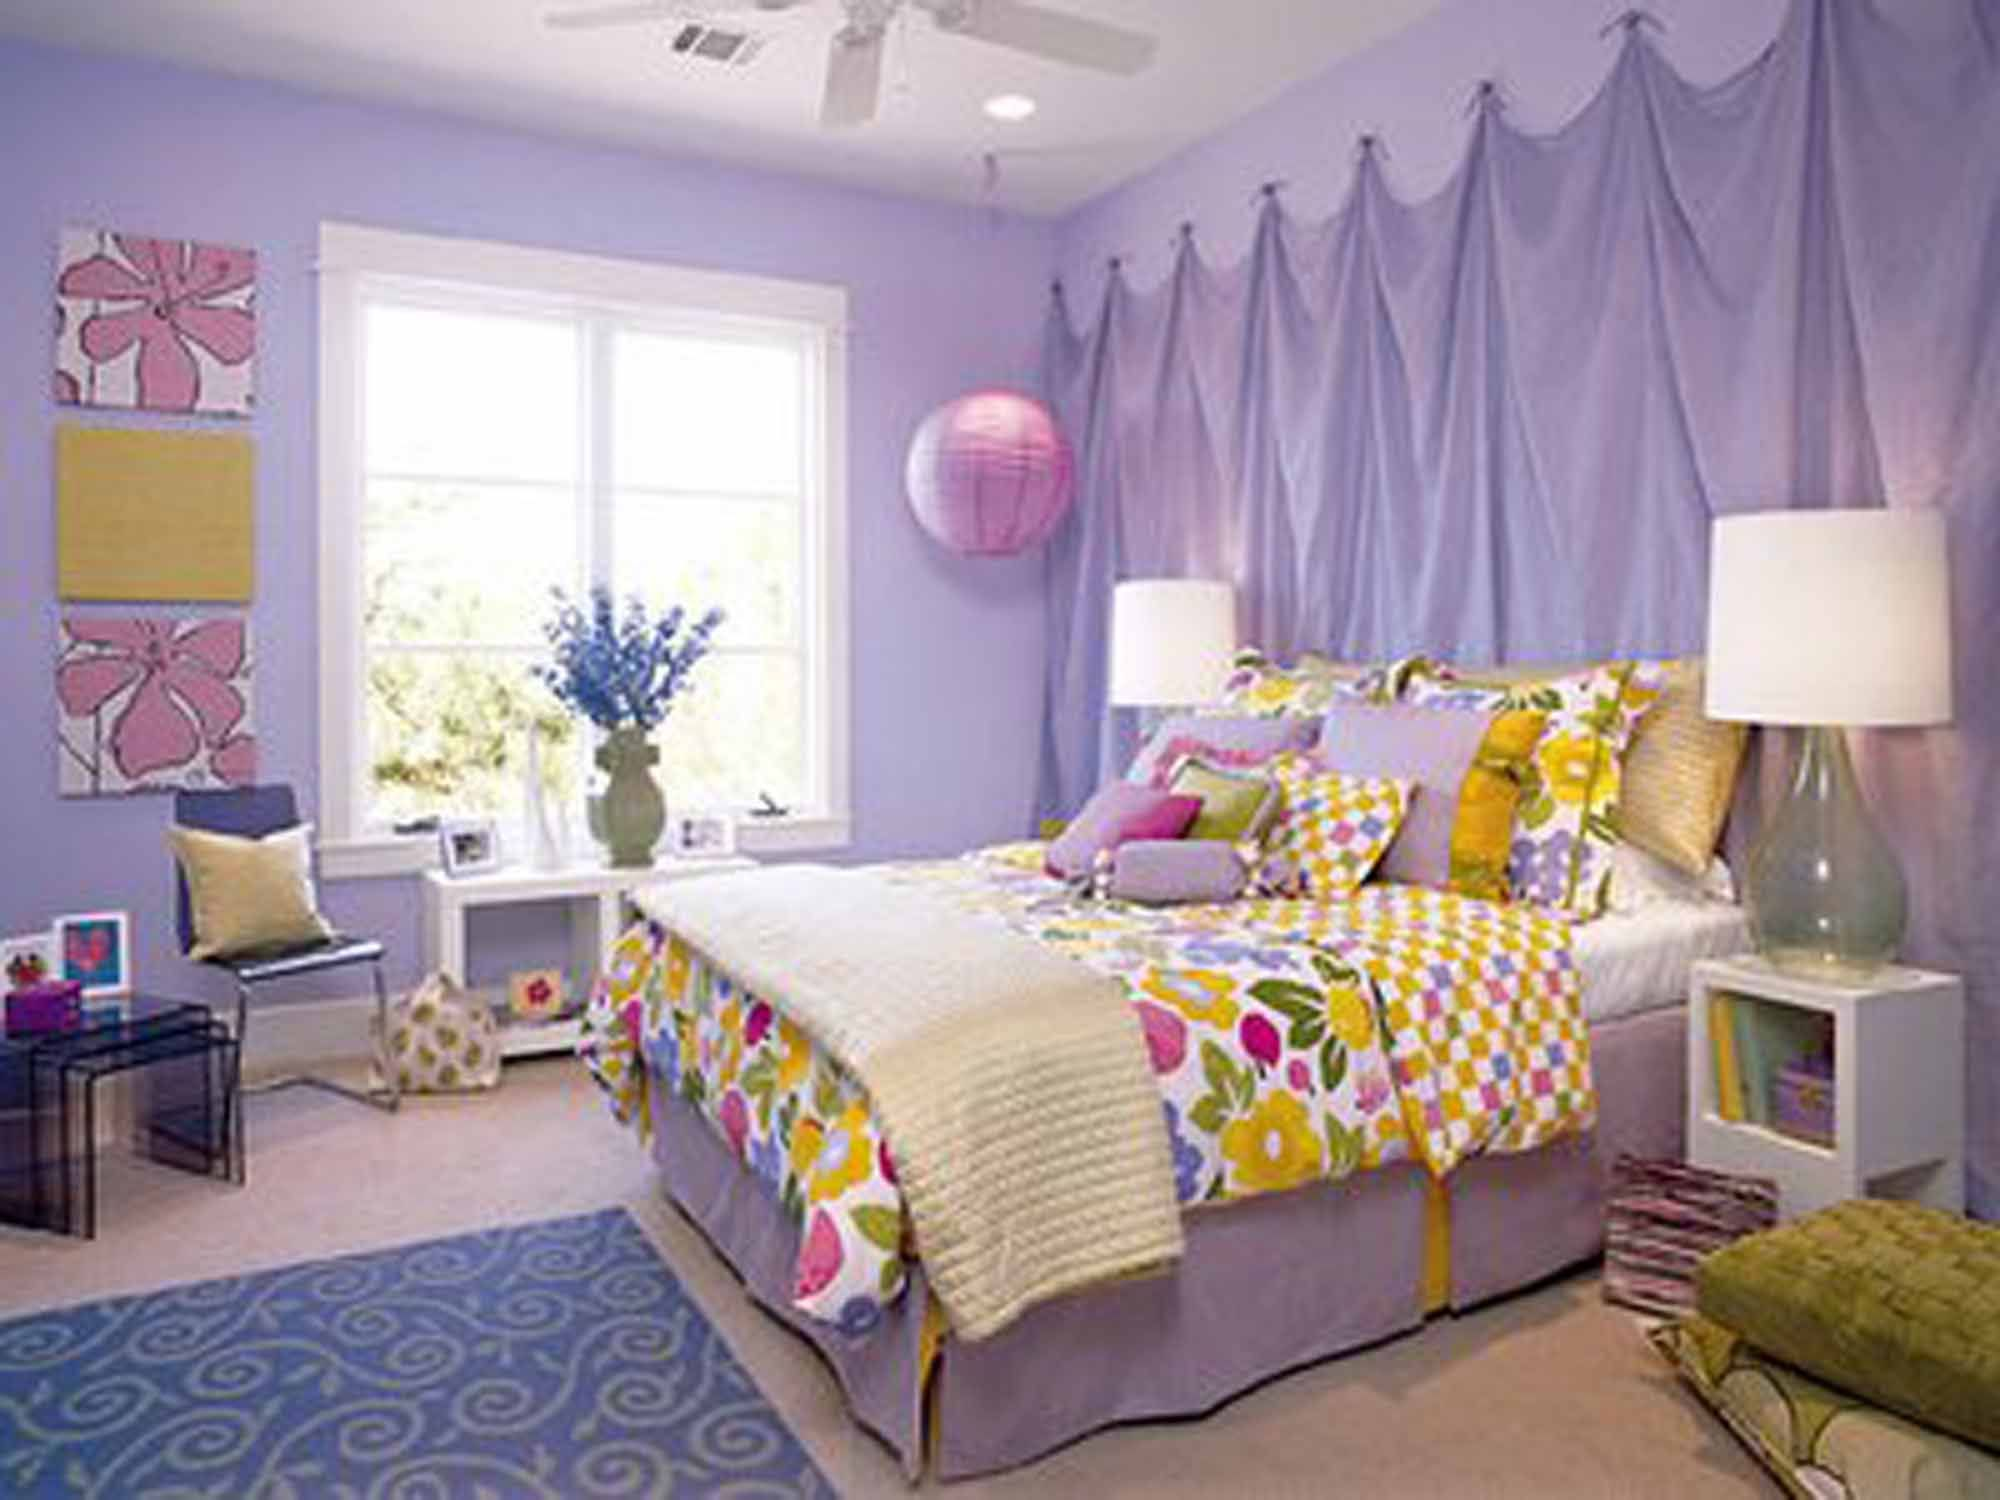 Vivacious Purple Bedroom Ideas for Teenage Bedroom Design